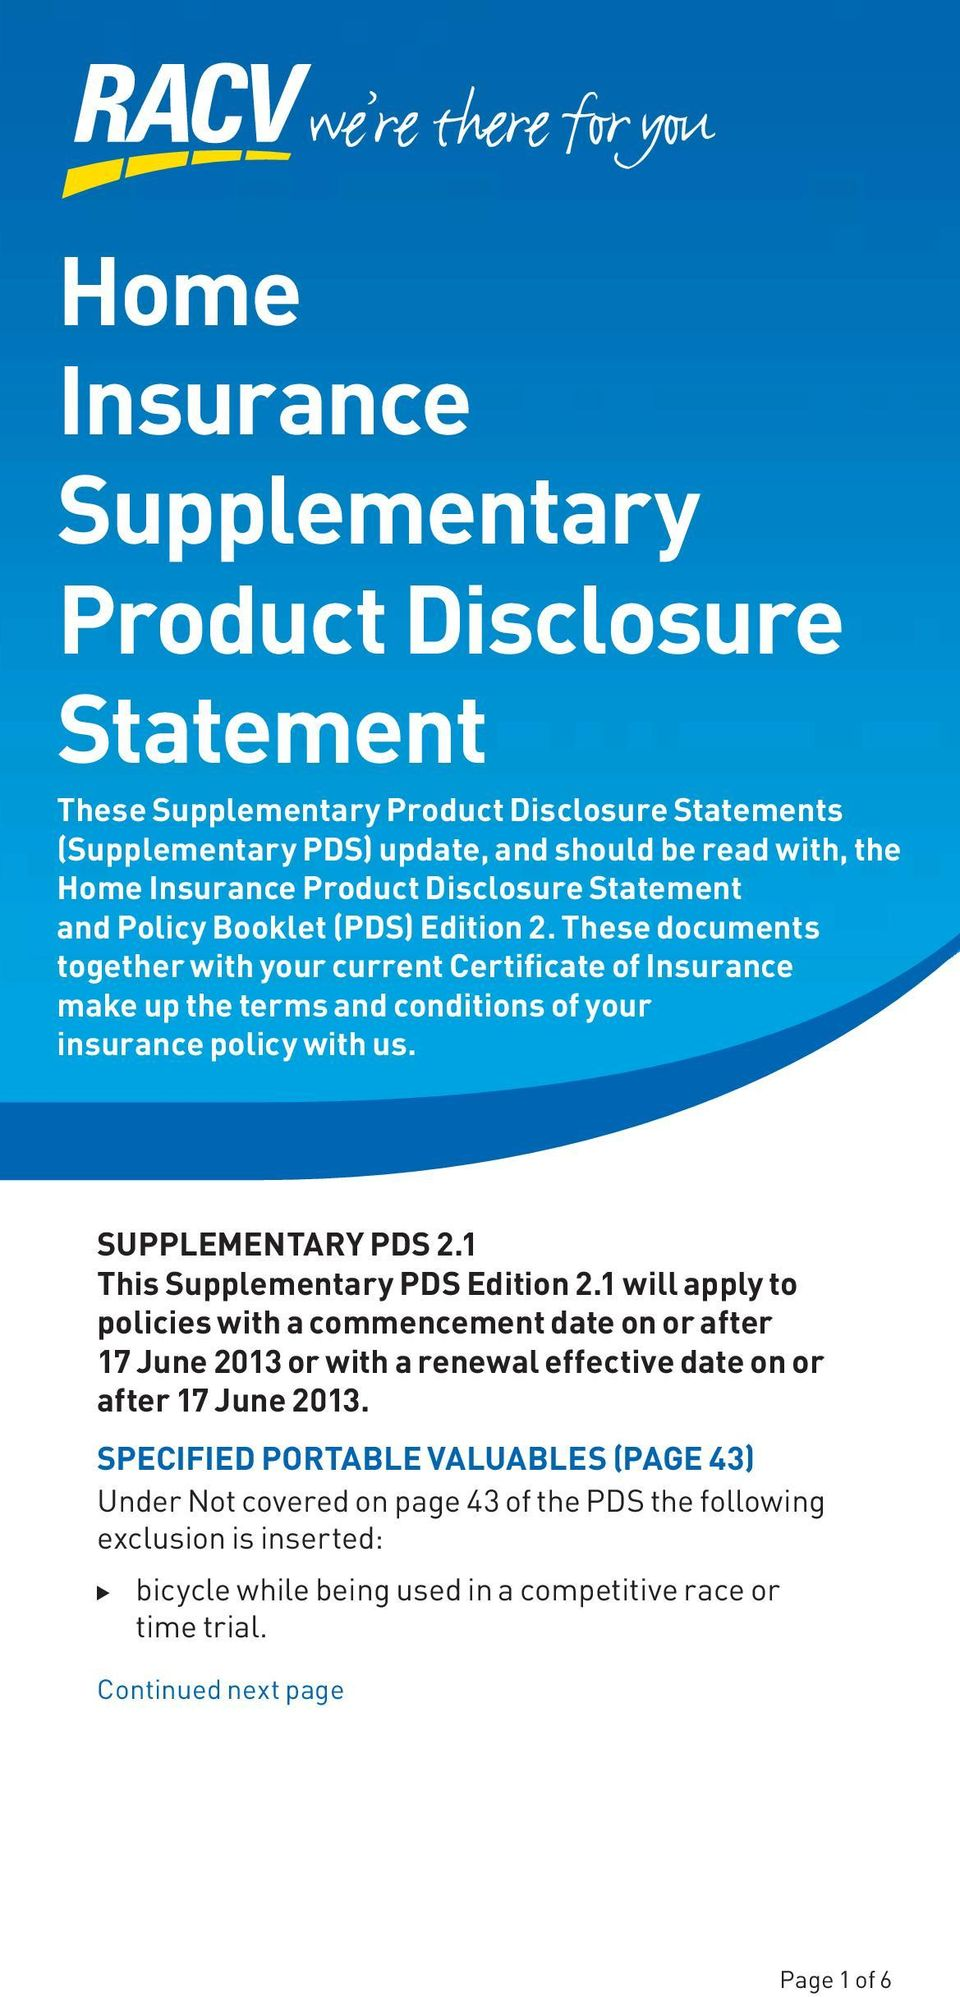 SUPPLEMENTARY PDS 2.1 This Supplementary PDS Edition 2.1 will apply to policies with a commencement date on or after 17 June 2013 or with a renewal effective date on or after 17 June 2013.